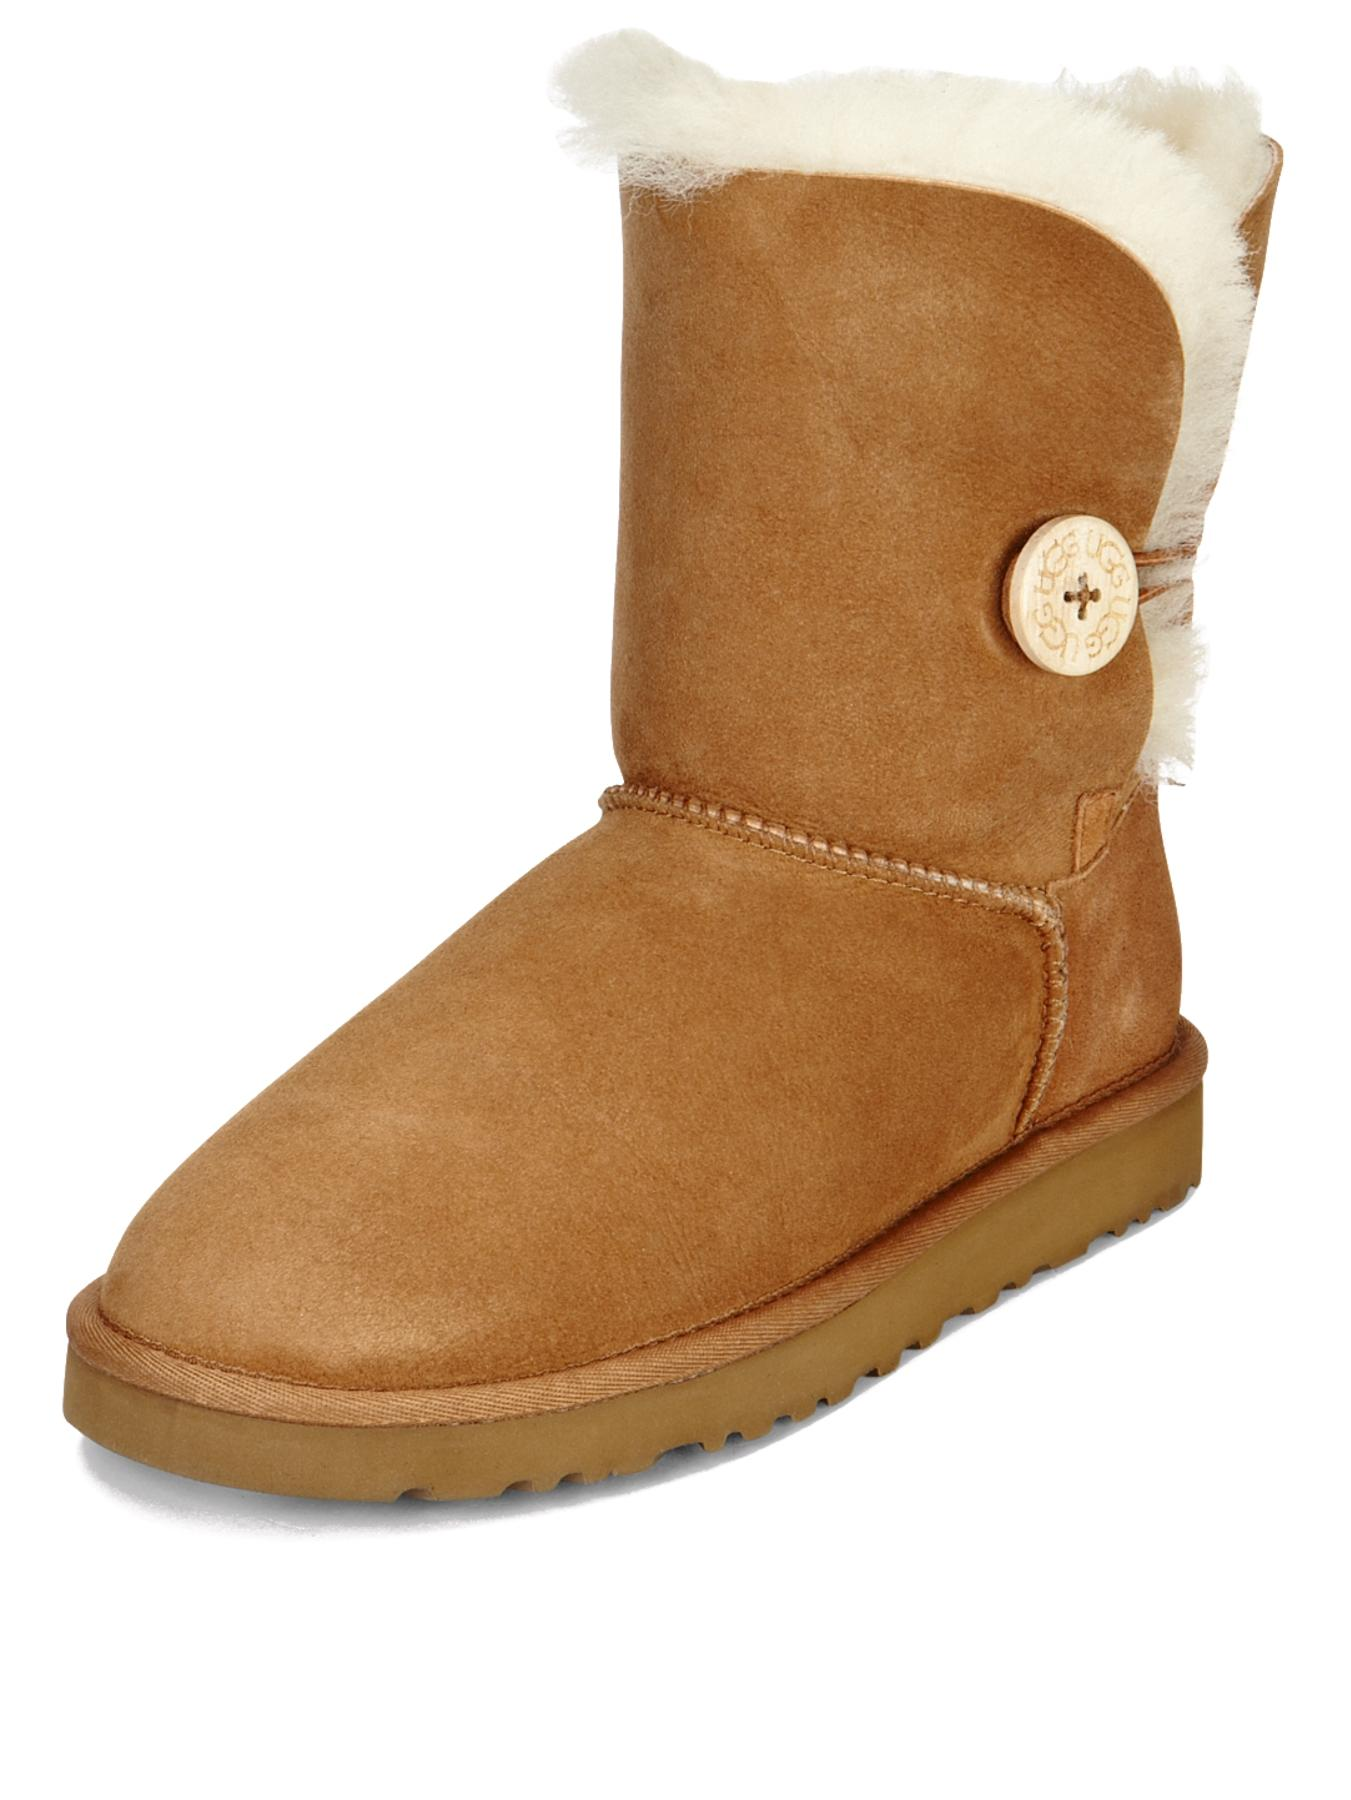 Cheap Ugg Boots Women China Wholesale · Uggs Boots Clearance For Babies Canada